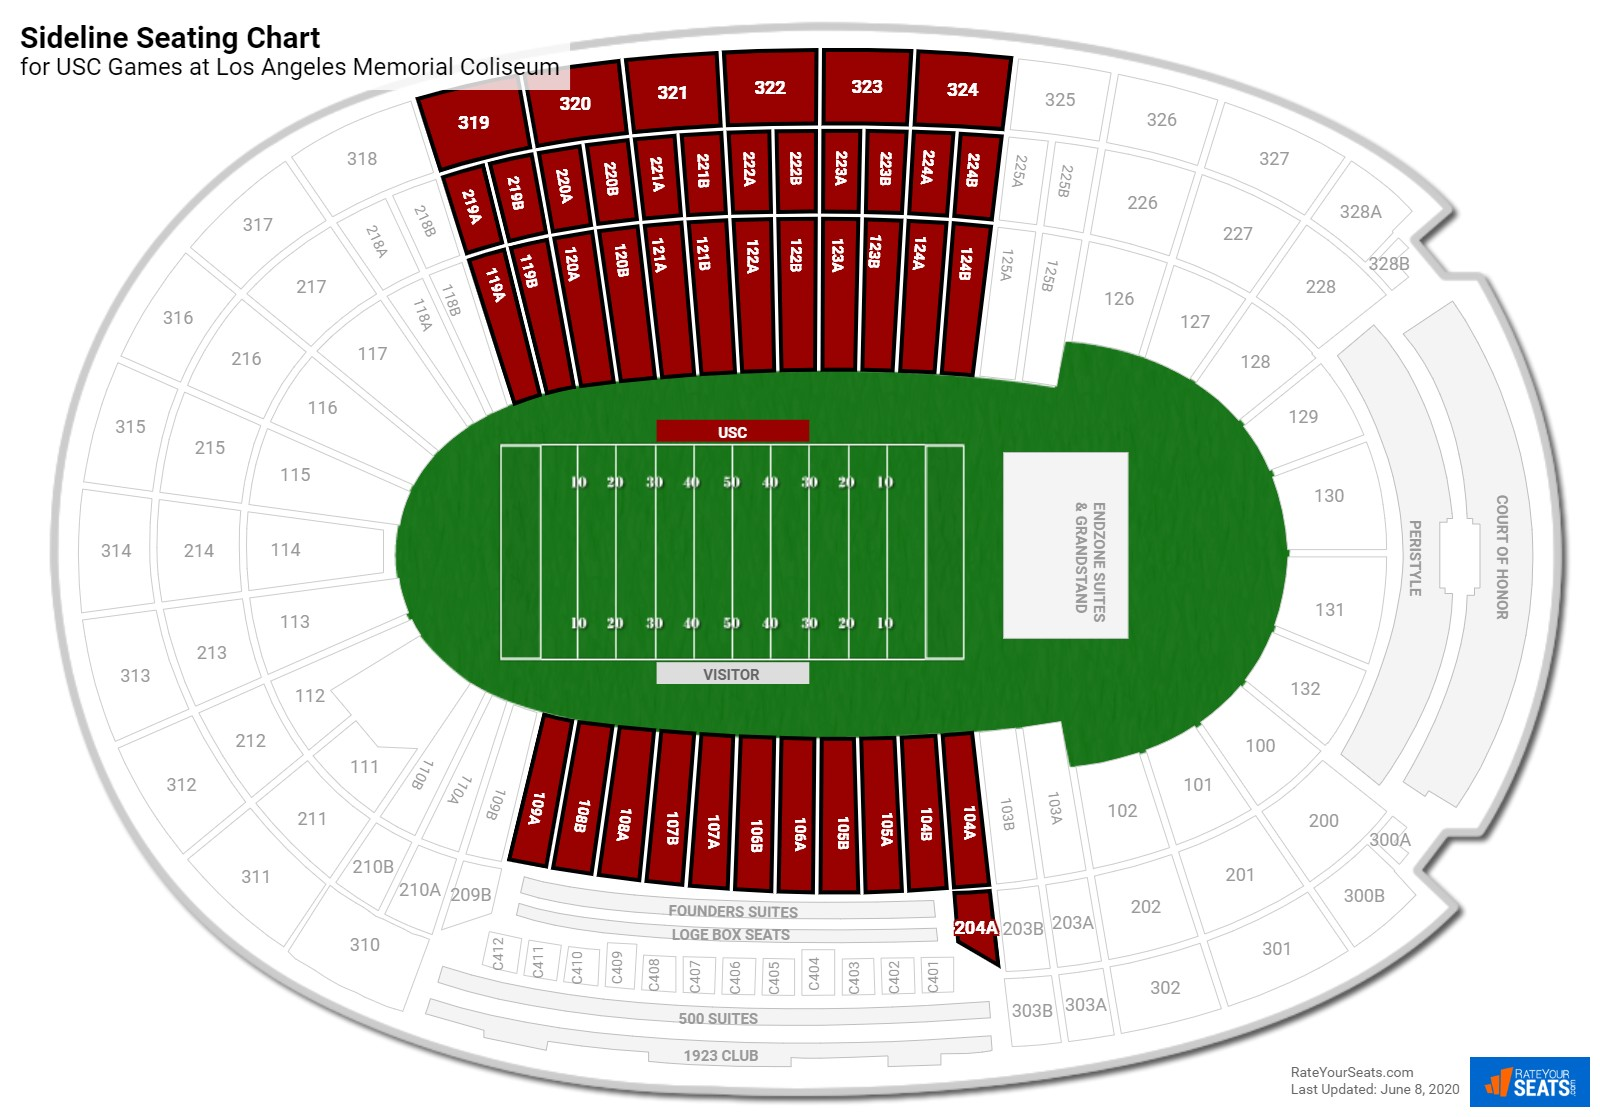 Los Angeles Memorial Coliseum Sideline seating chart